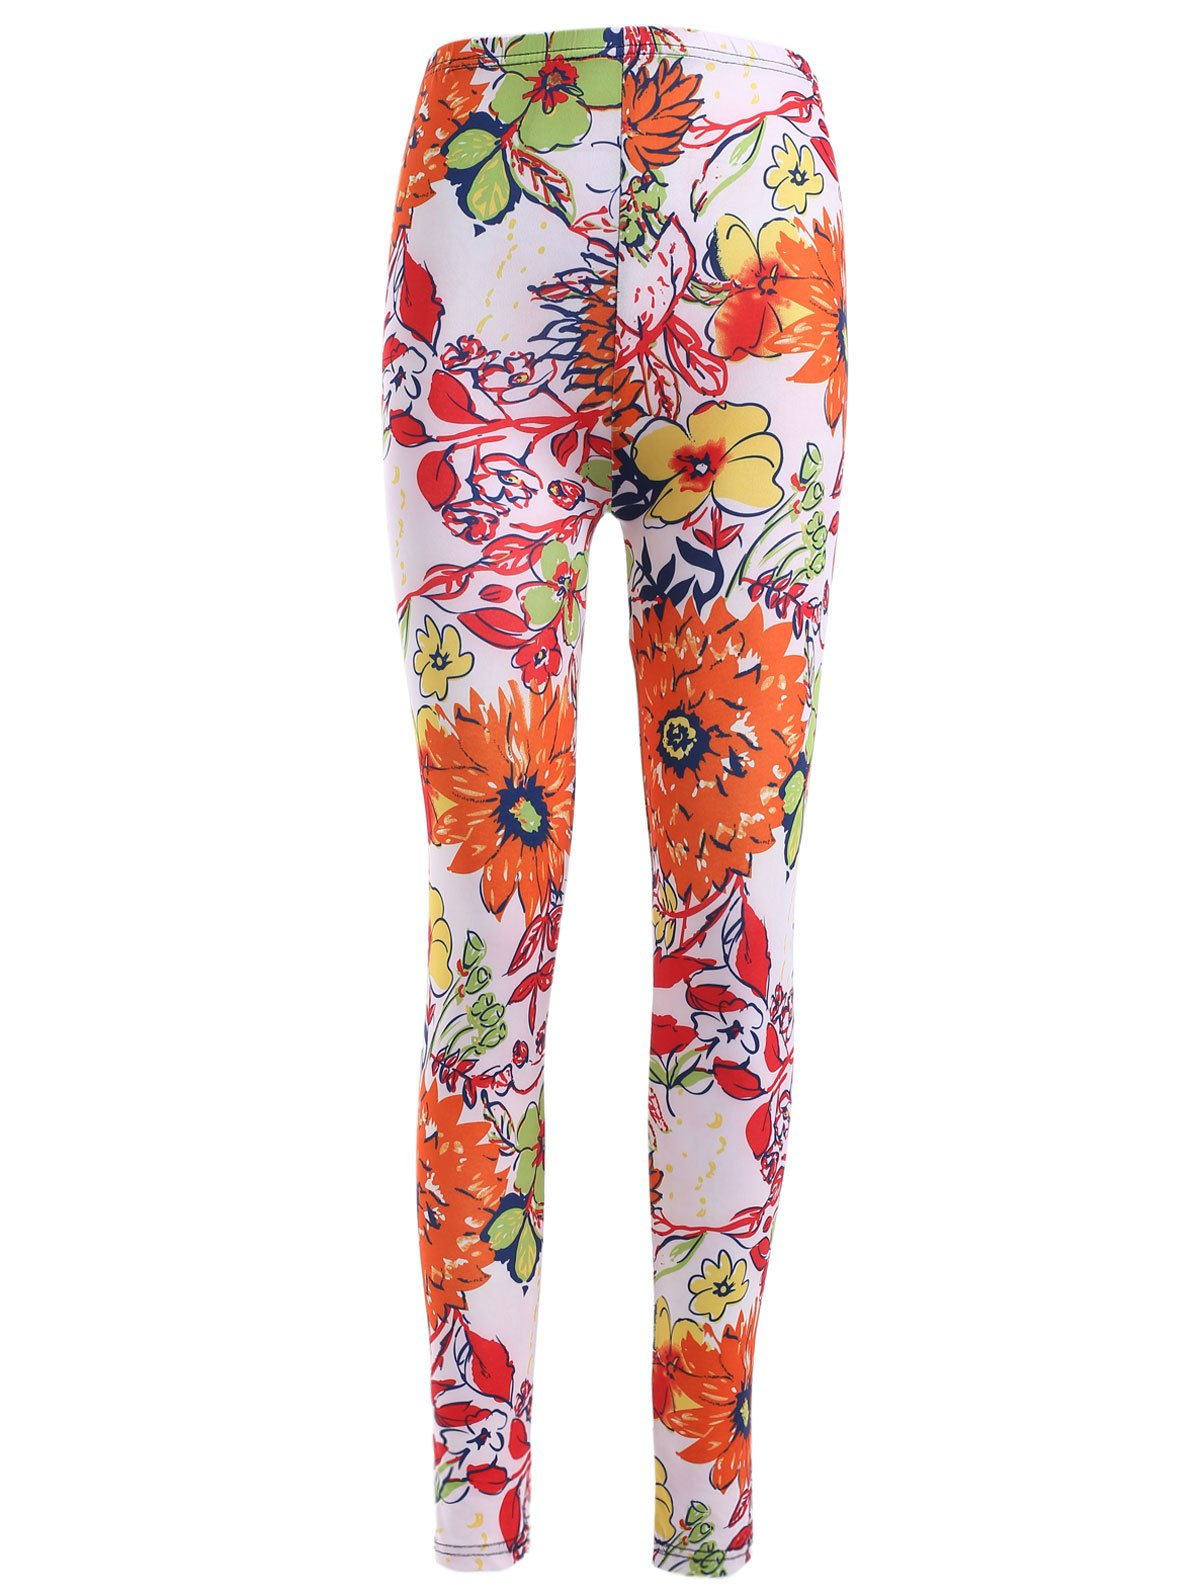 Causal Elastic Waist Floral Printing Skinny Stretch Pants For Women